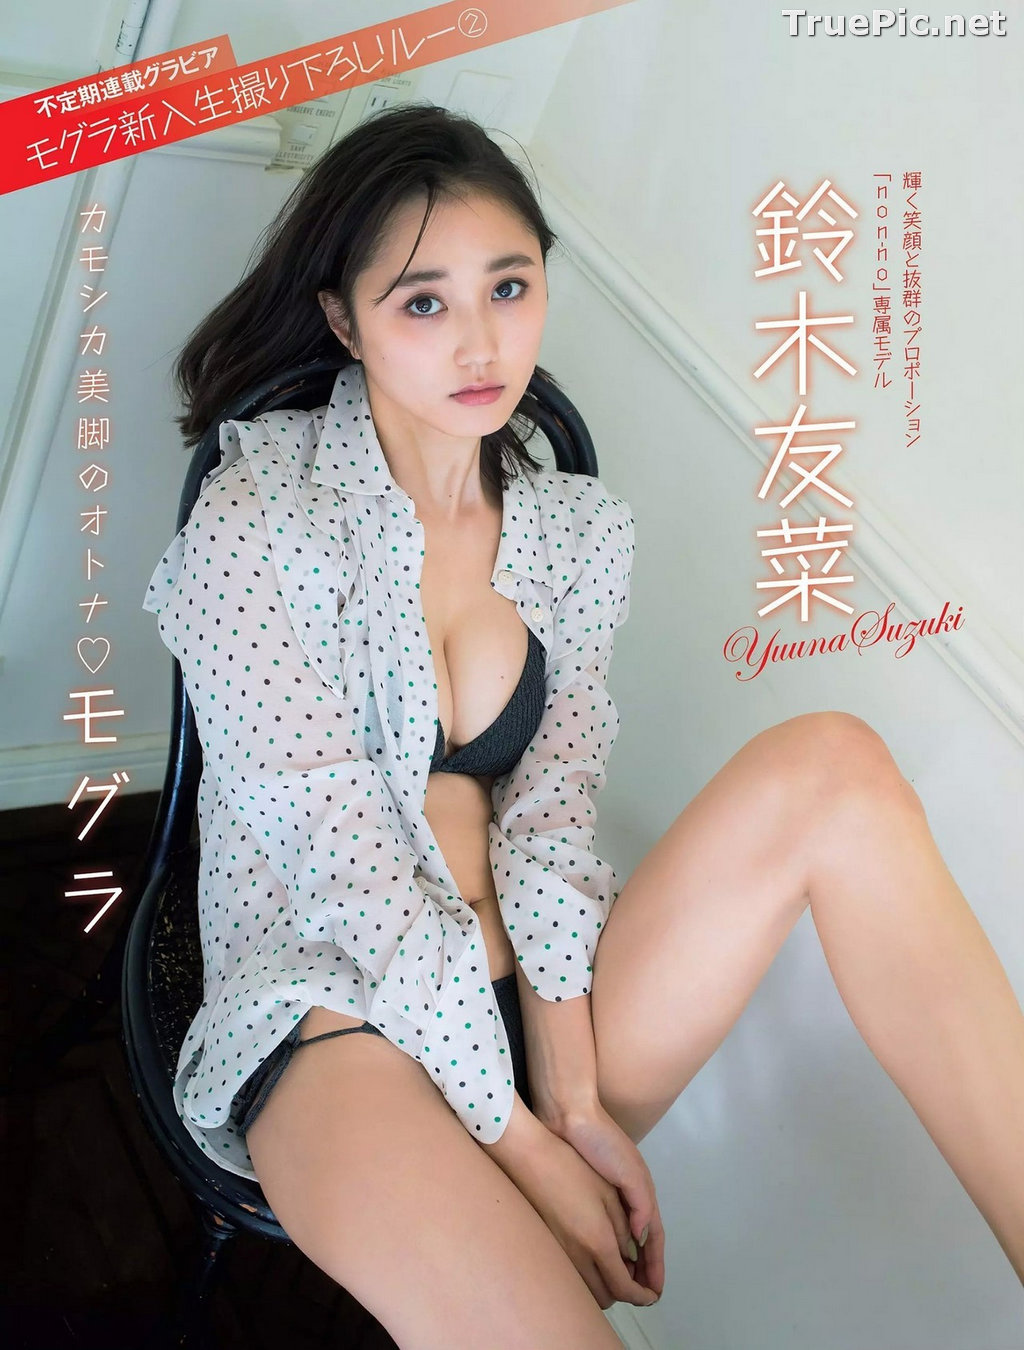 Image Japanese Model and Actress - Yuuna Suzuki - Sexy Picture Collection 2020 - TruePic.net - Picture-1